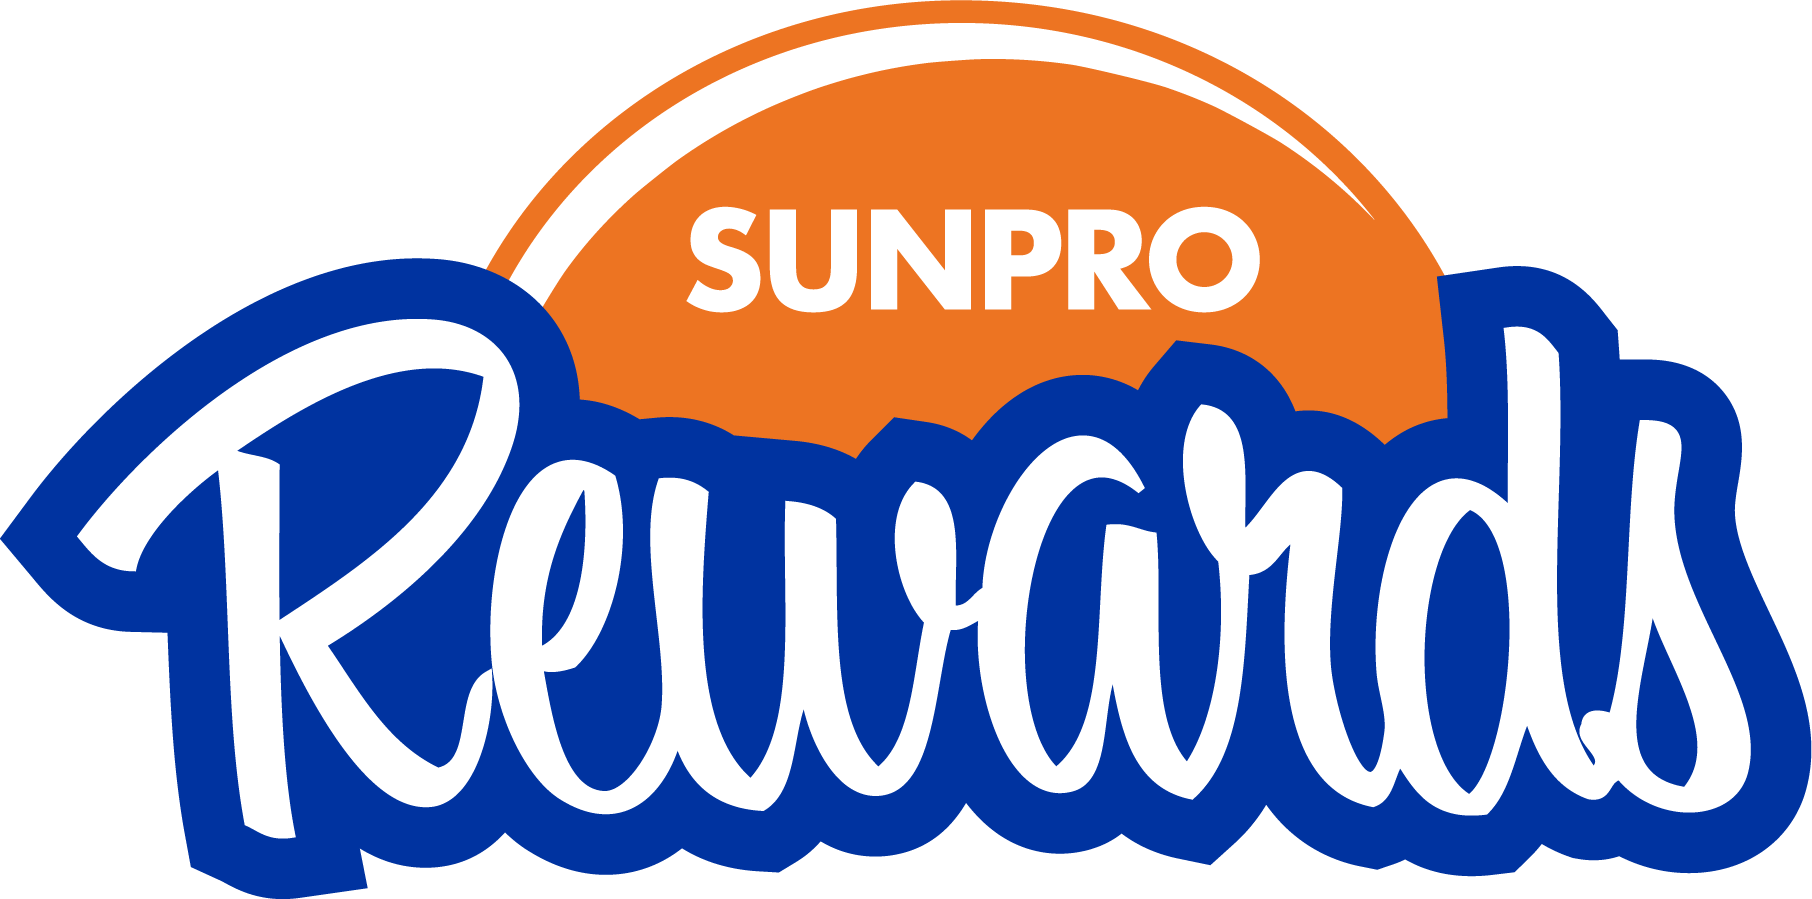 Sunpro Rewards Logo